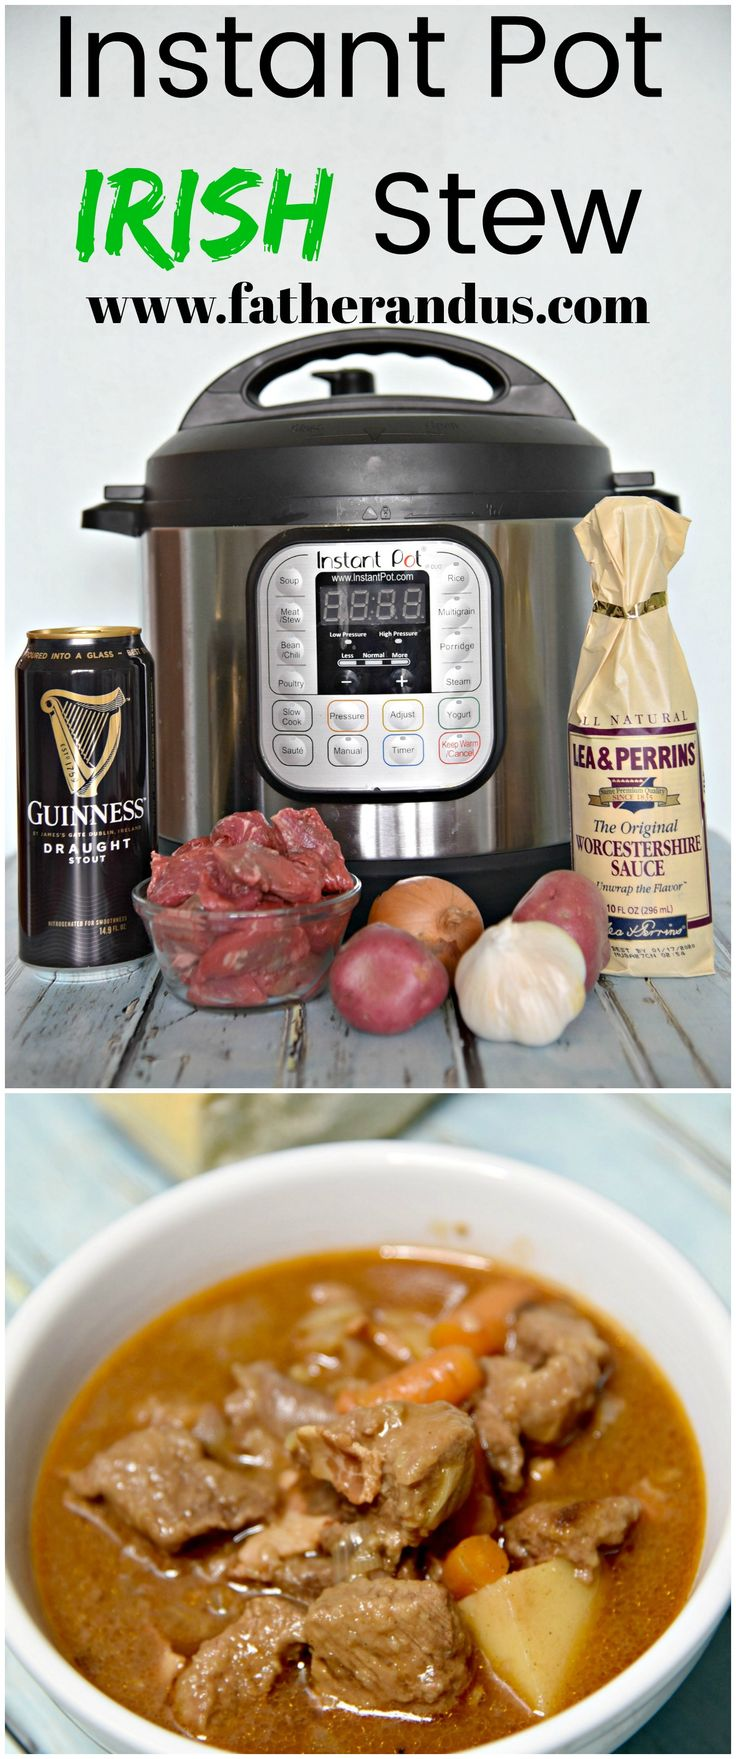 Get ready for this traditional Irish Stew made with Guinness.  This is a quick and easy recipe to make in your Instant Pot.  Perfect for a family dinner or a St. Patrick's Day Party.  The meat comes out super tender and it tastes even better for leftovers the next day! #InstantPot #Instantpotrecipes #Irishstew